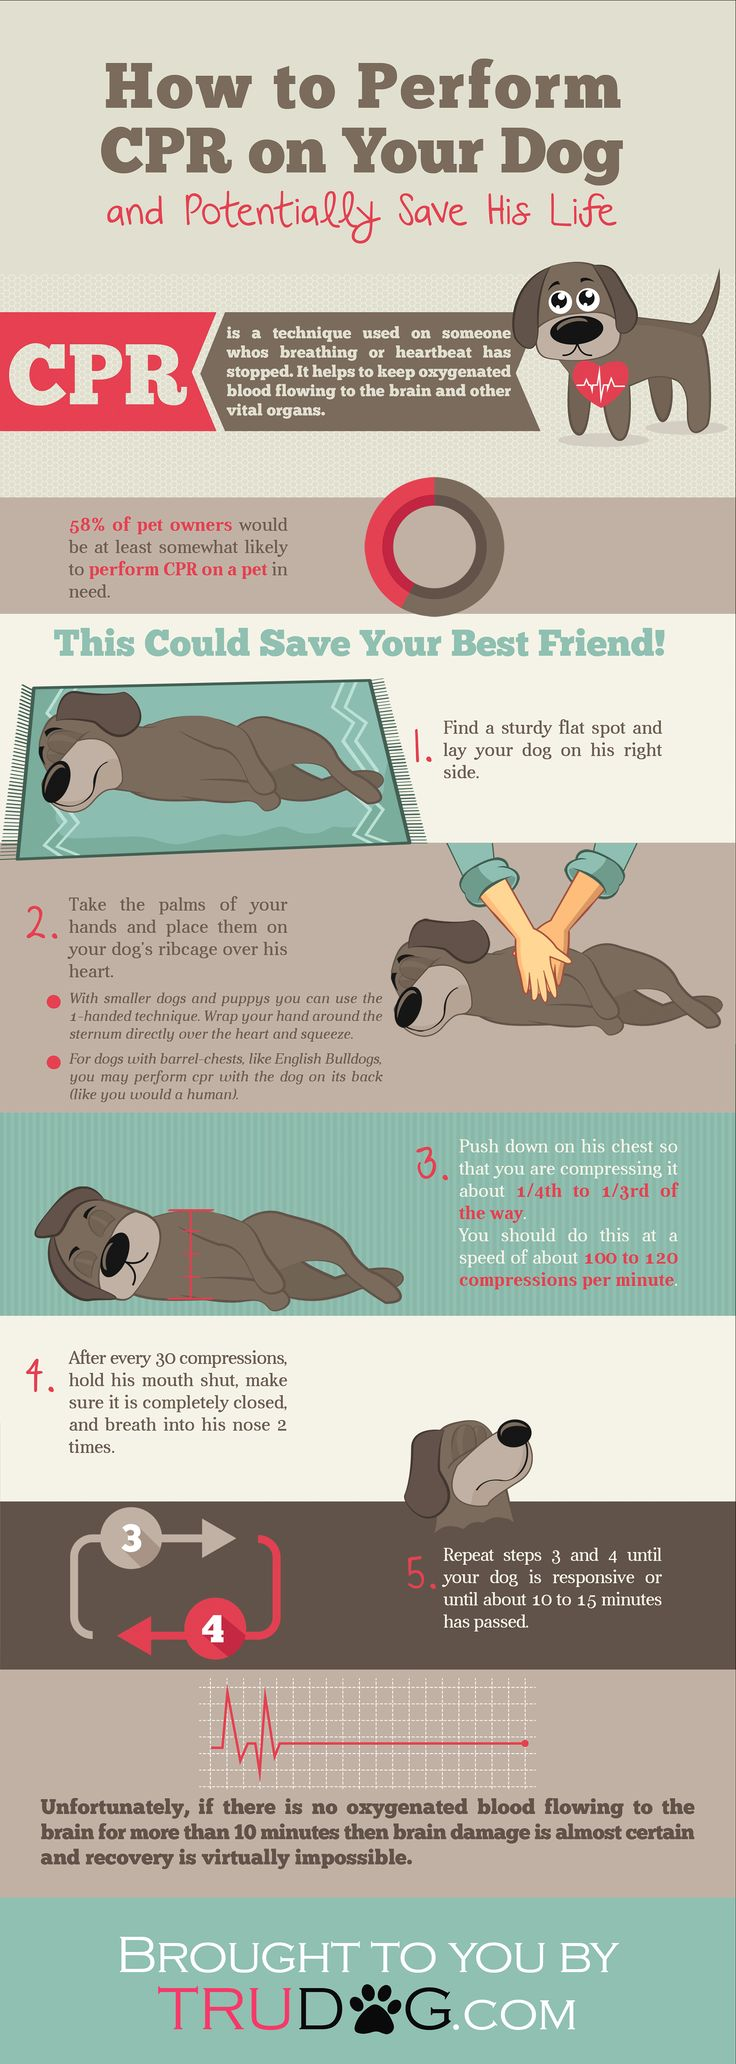 https://trudog.com/home/how-to-perform-cpr-on-your-dog-infographic?utm_source=Pinterest&utm_medium=Organic&utm_campaign=Dog%20CPR%20Infographic